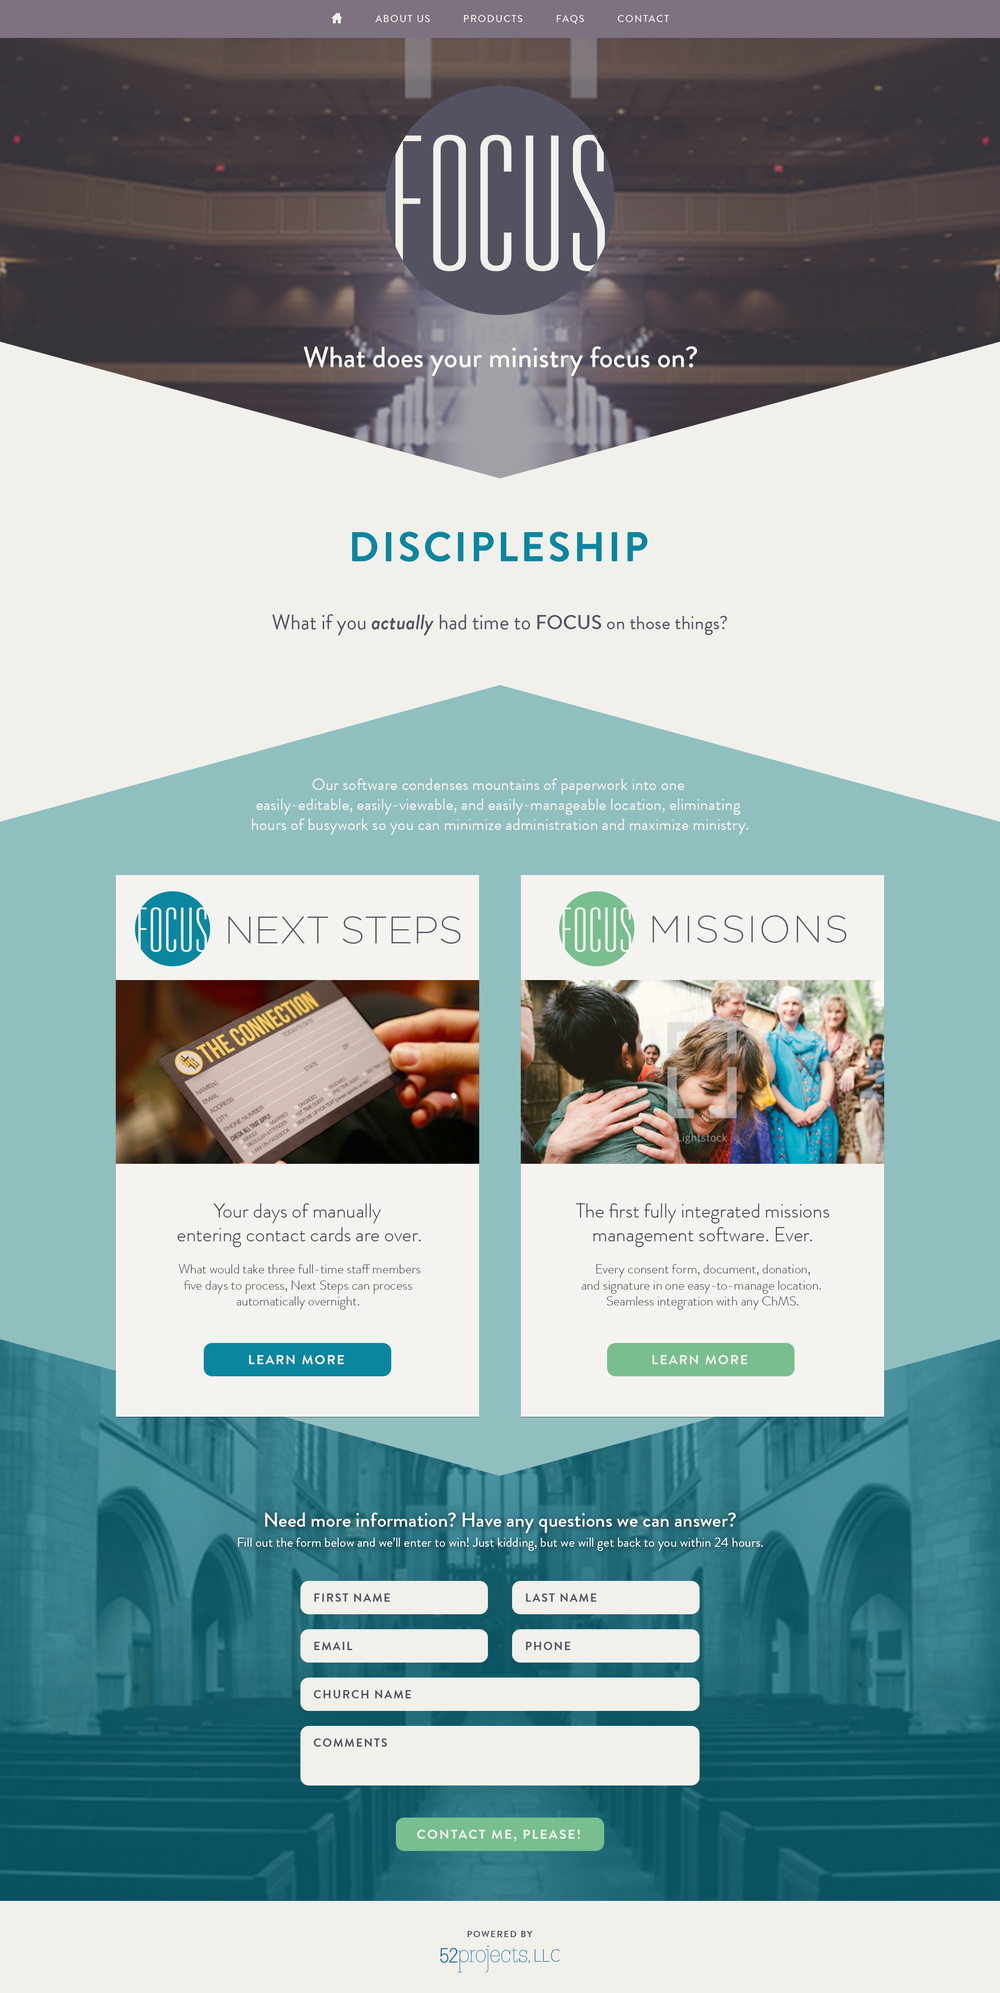 Focus : Church and ministry software designed to minimize admin and maximize ministry |  Currently in development